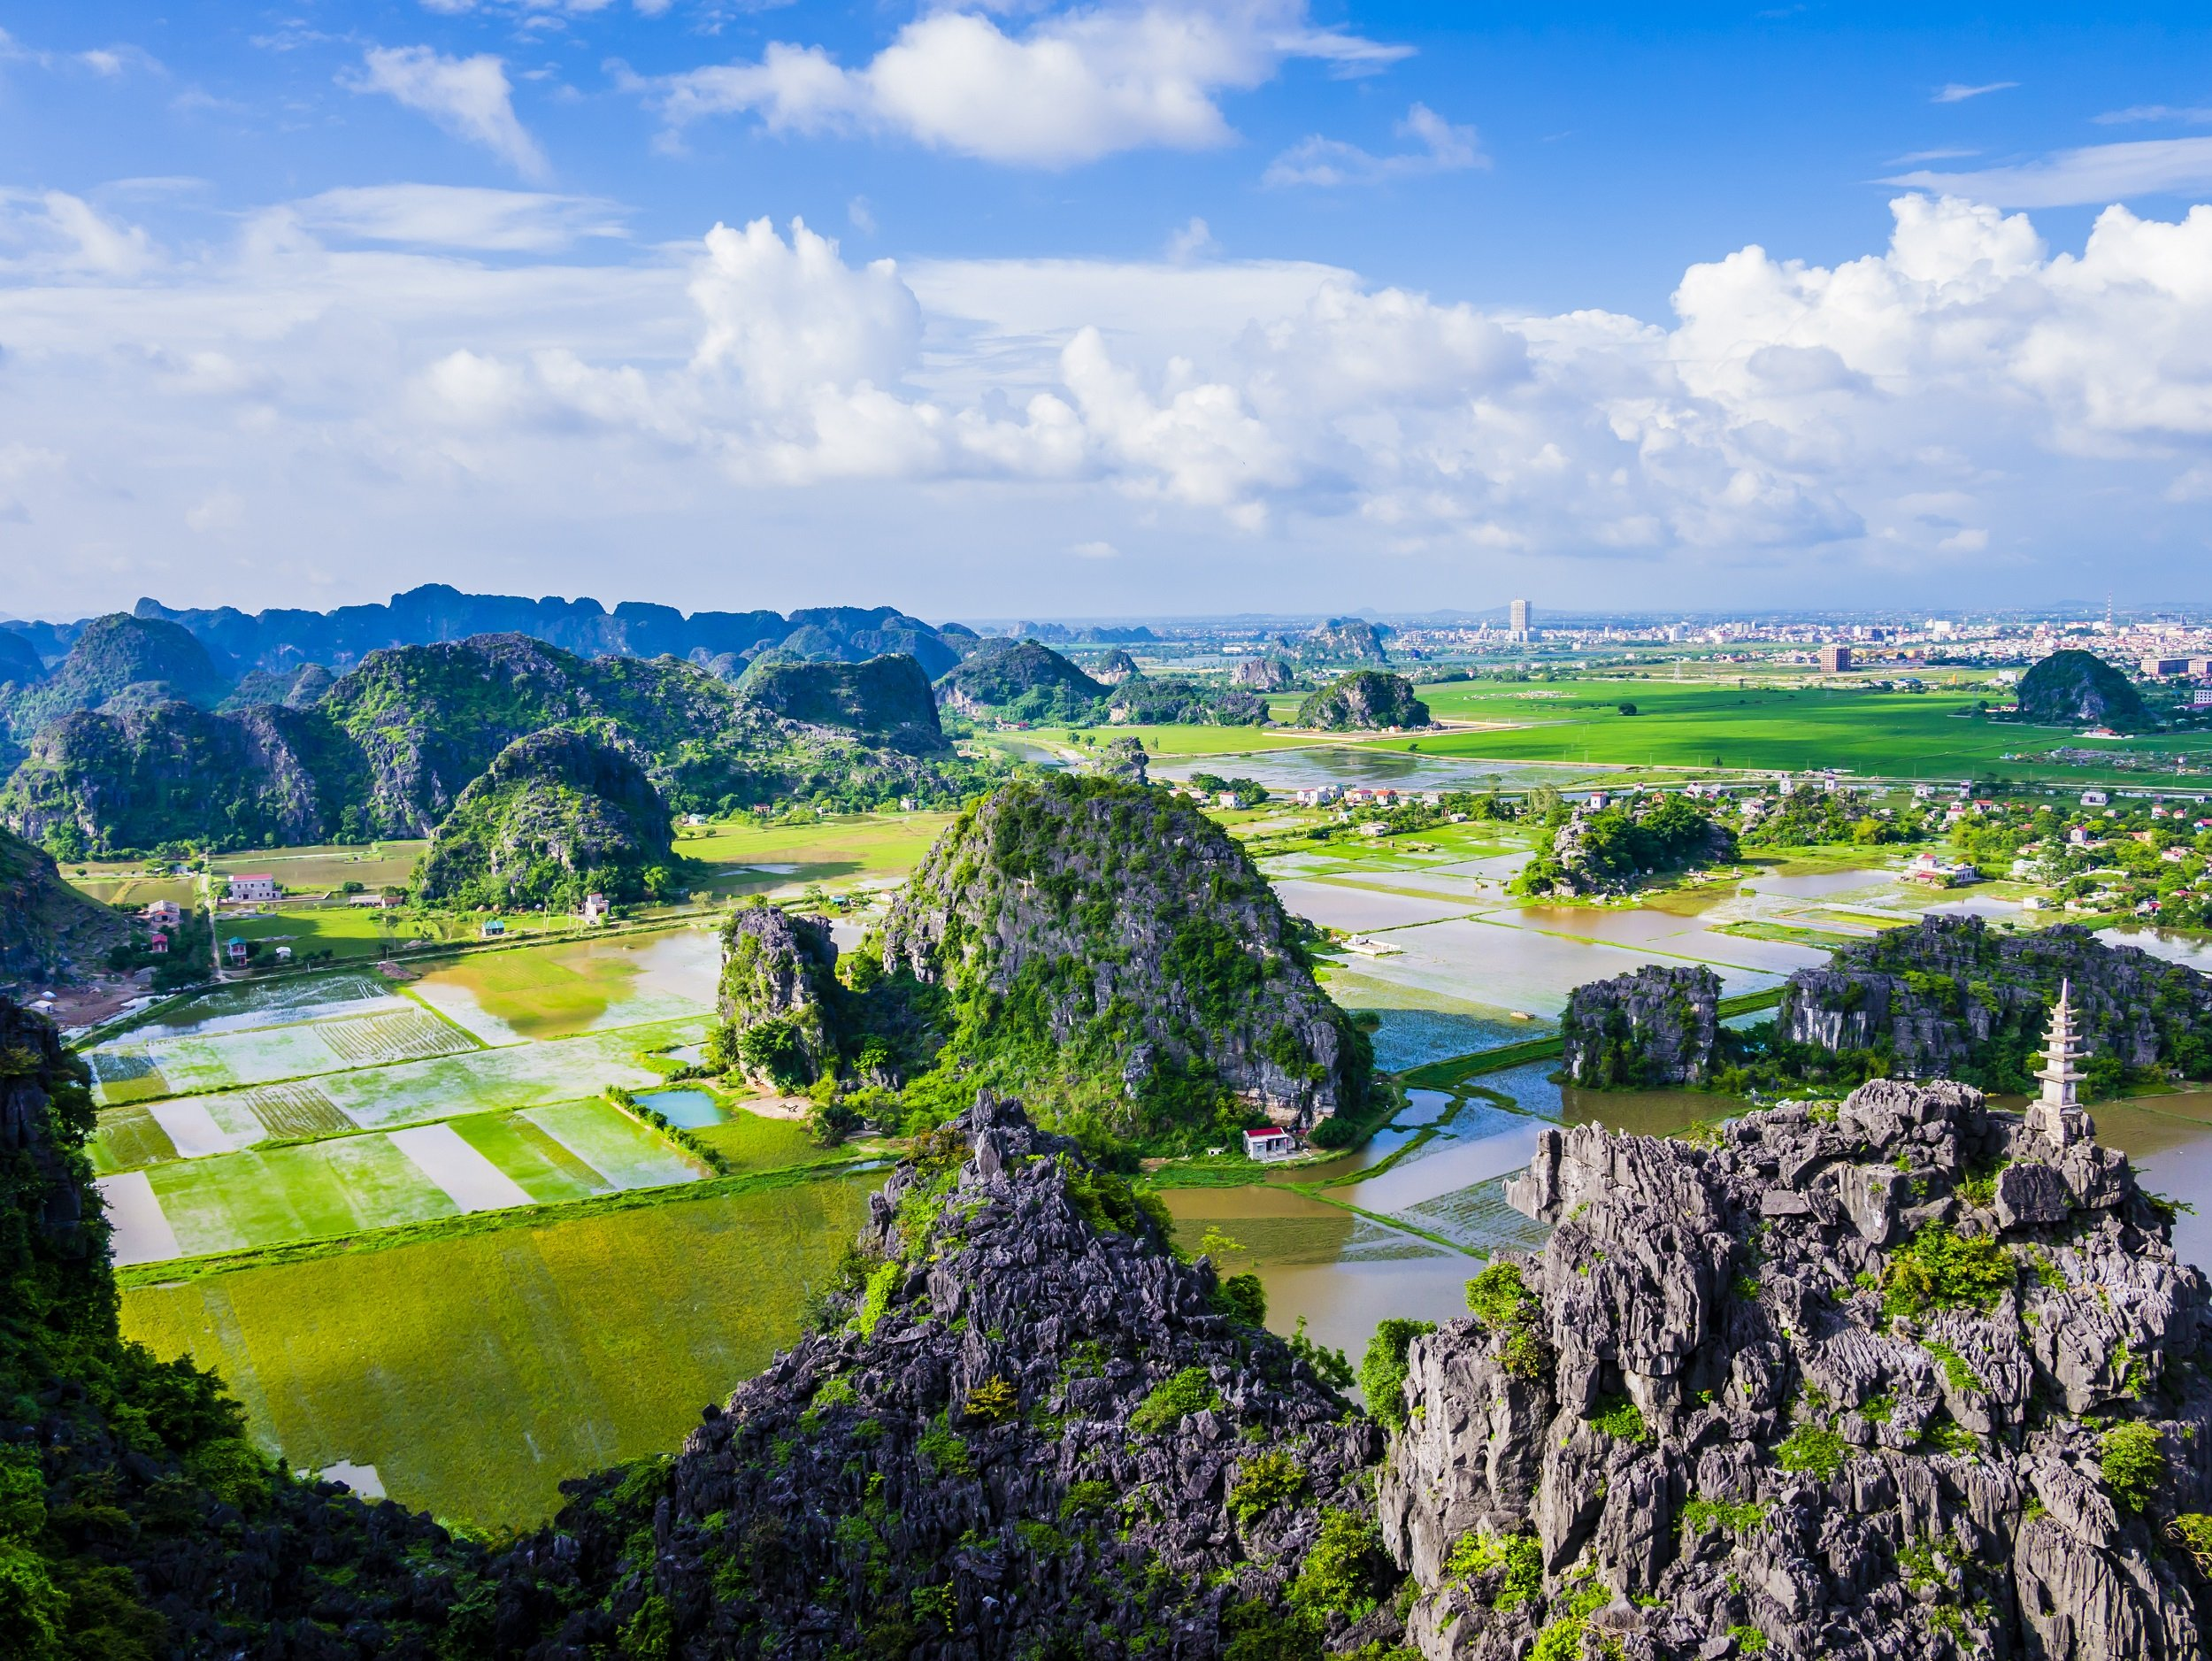 Marvel The Panoramic Views From The Dancing Cave On The On The Ninh Binh, Bai Dinh, Dancing Cave & Trang An Tour From Hanoi